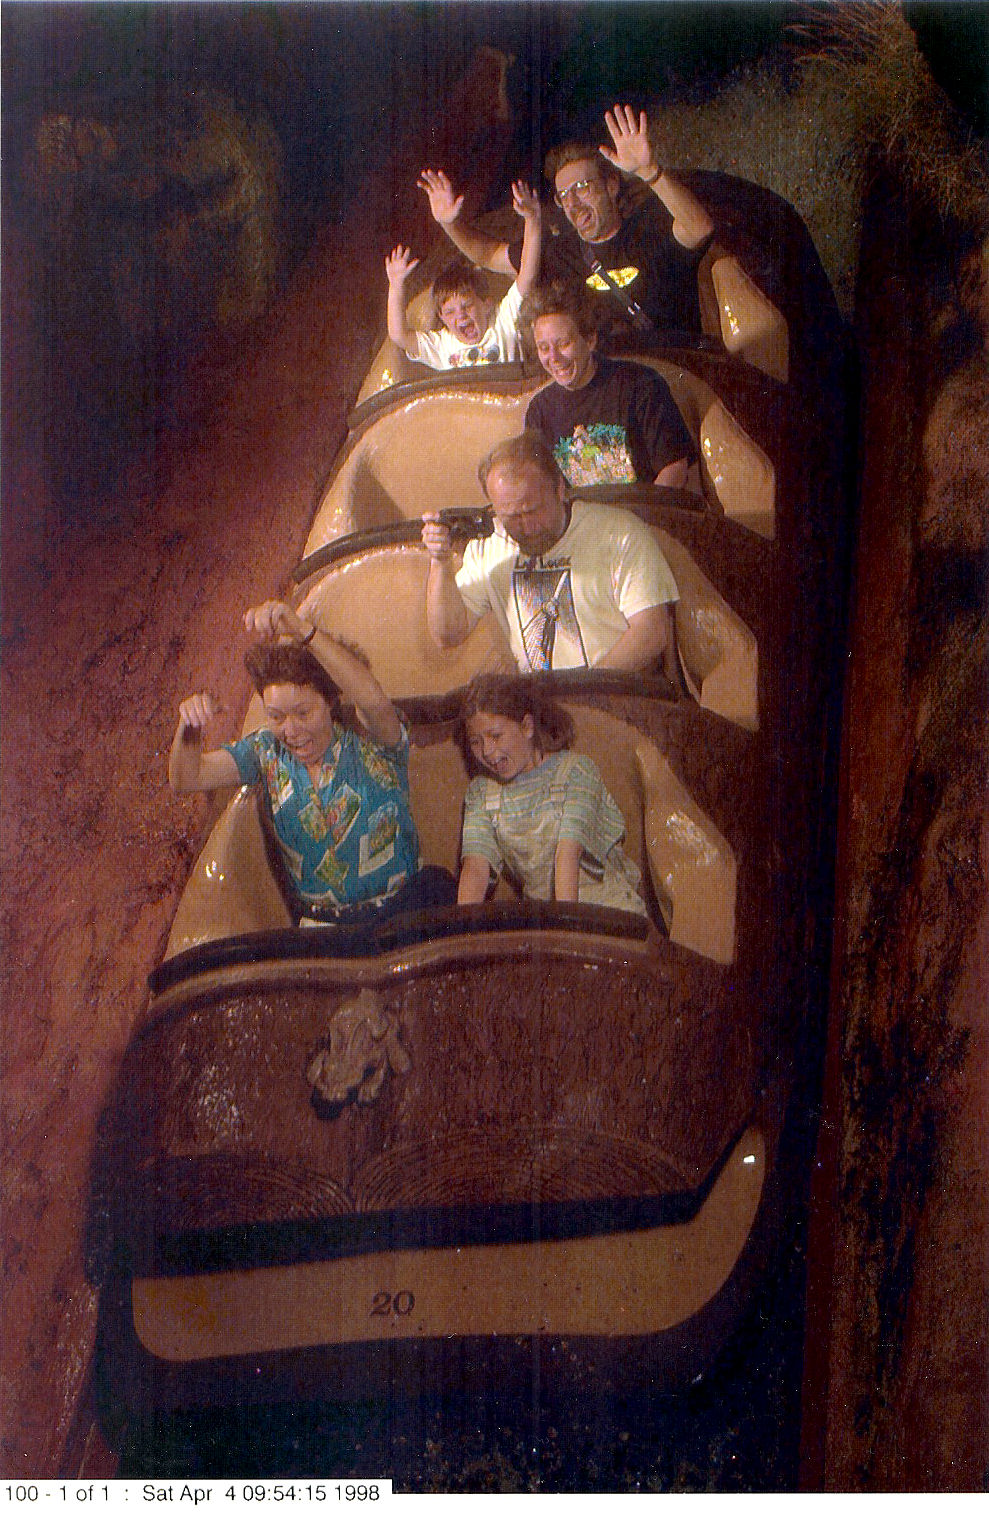 Me and my dad, (in the back row), on Splash Mountain at The Magic Kingdom at Disney World.